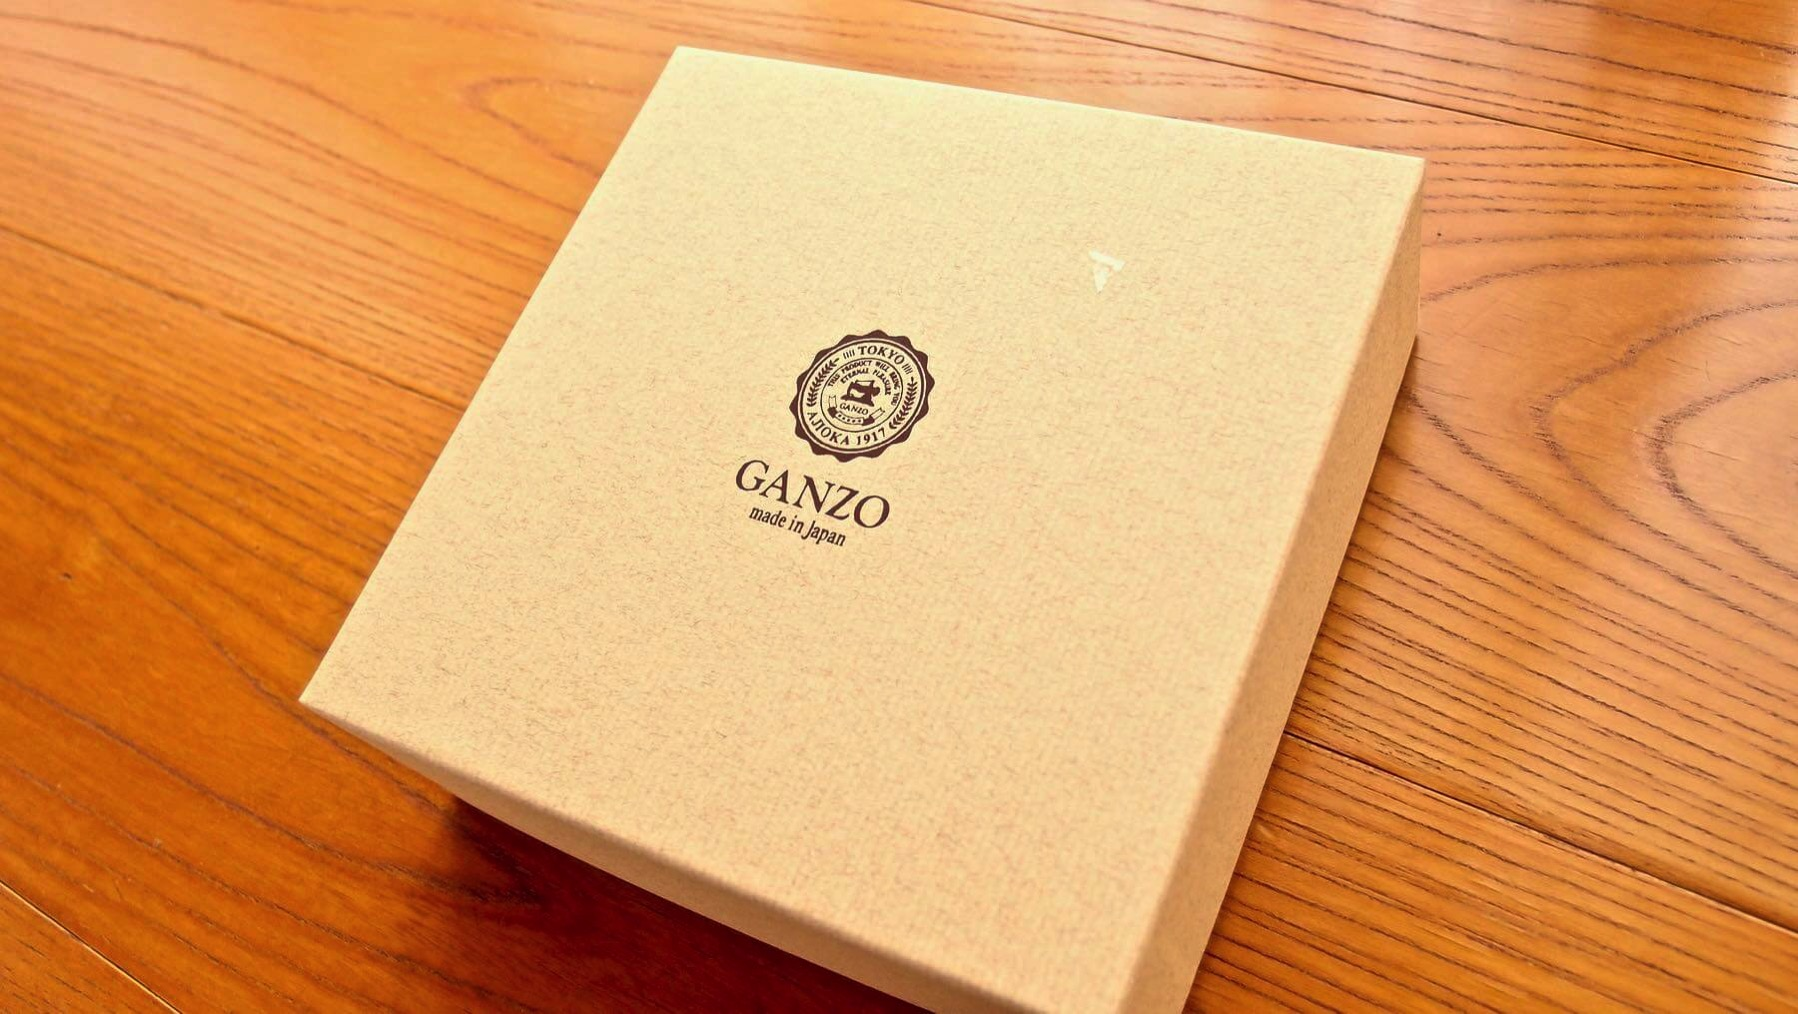 13 Ganzo leather belt BRIDLE BOX